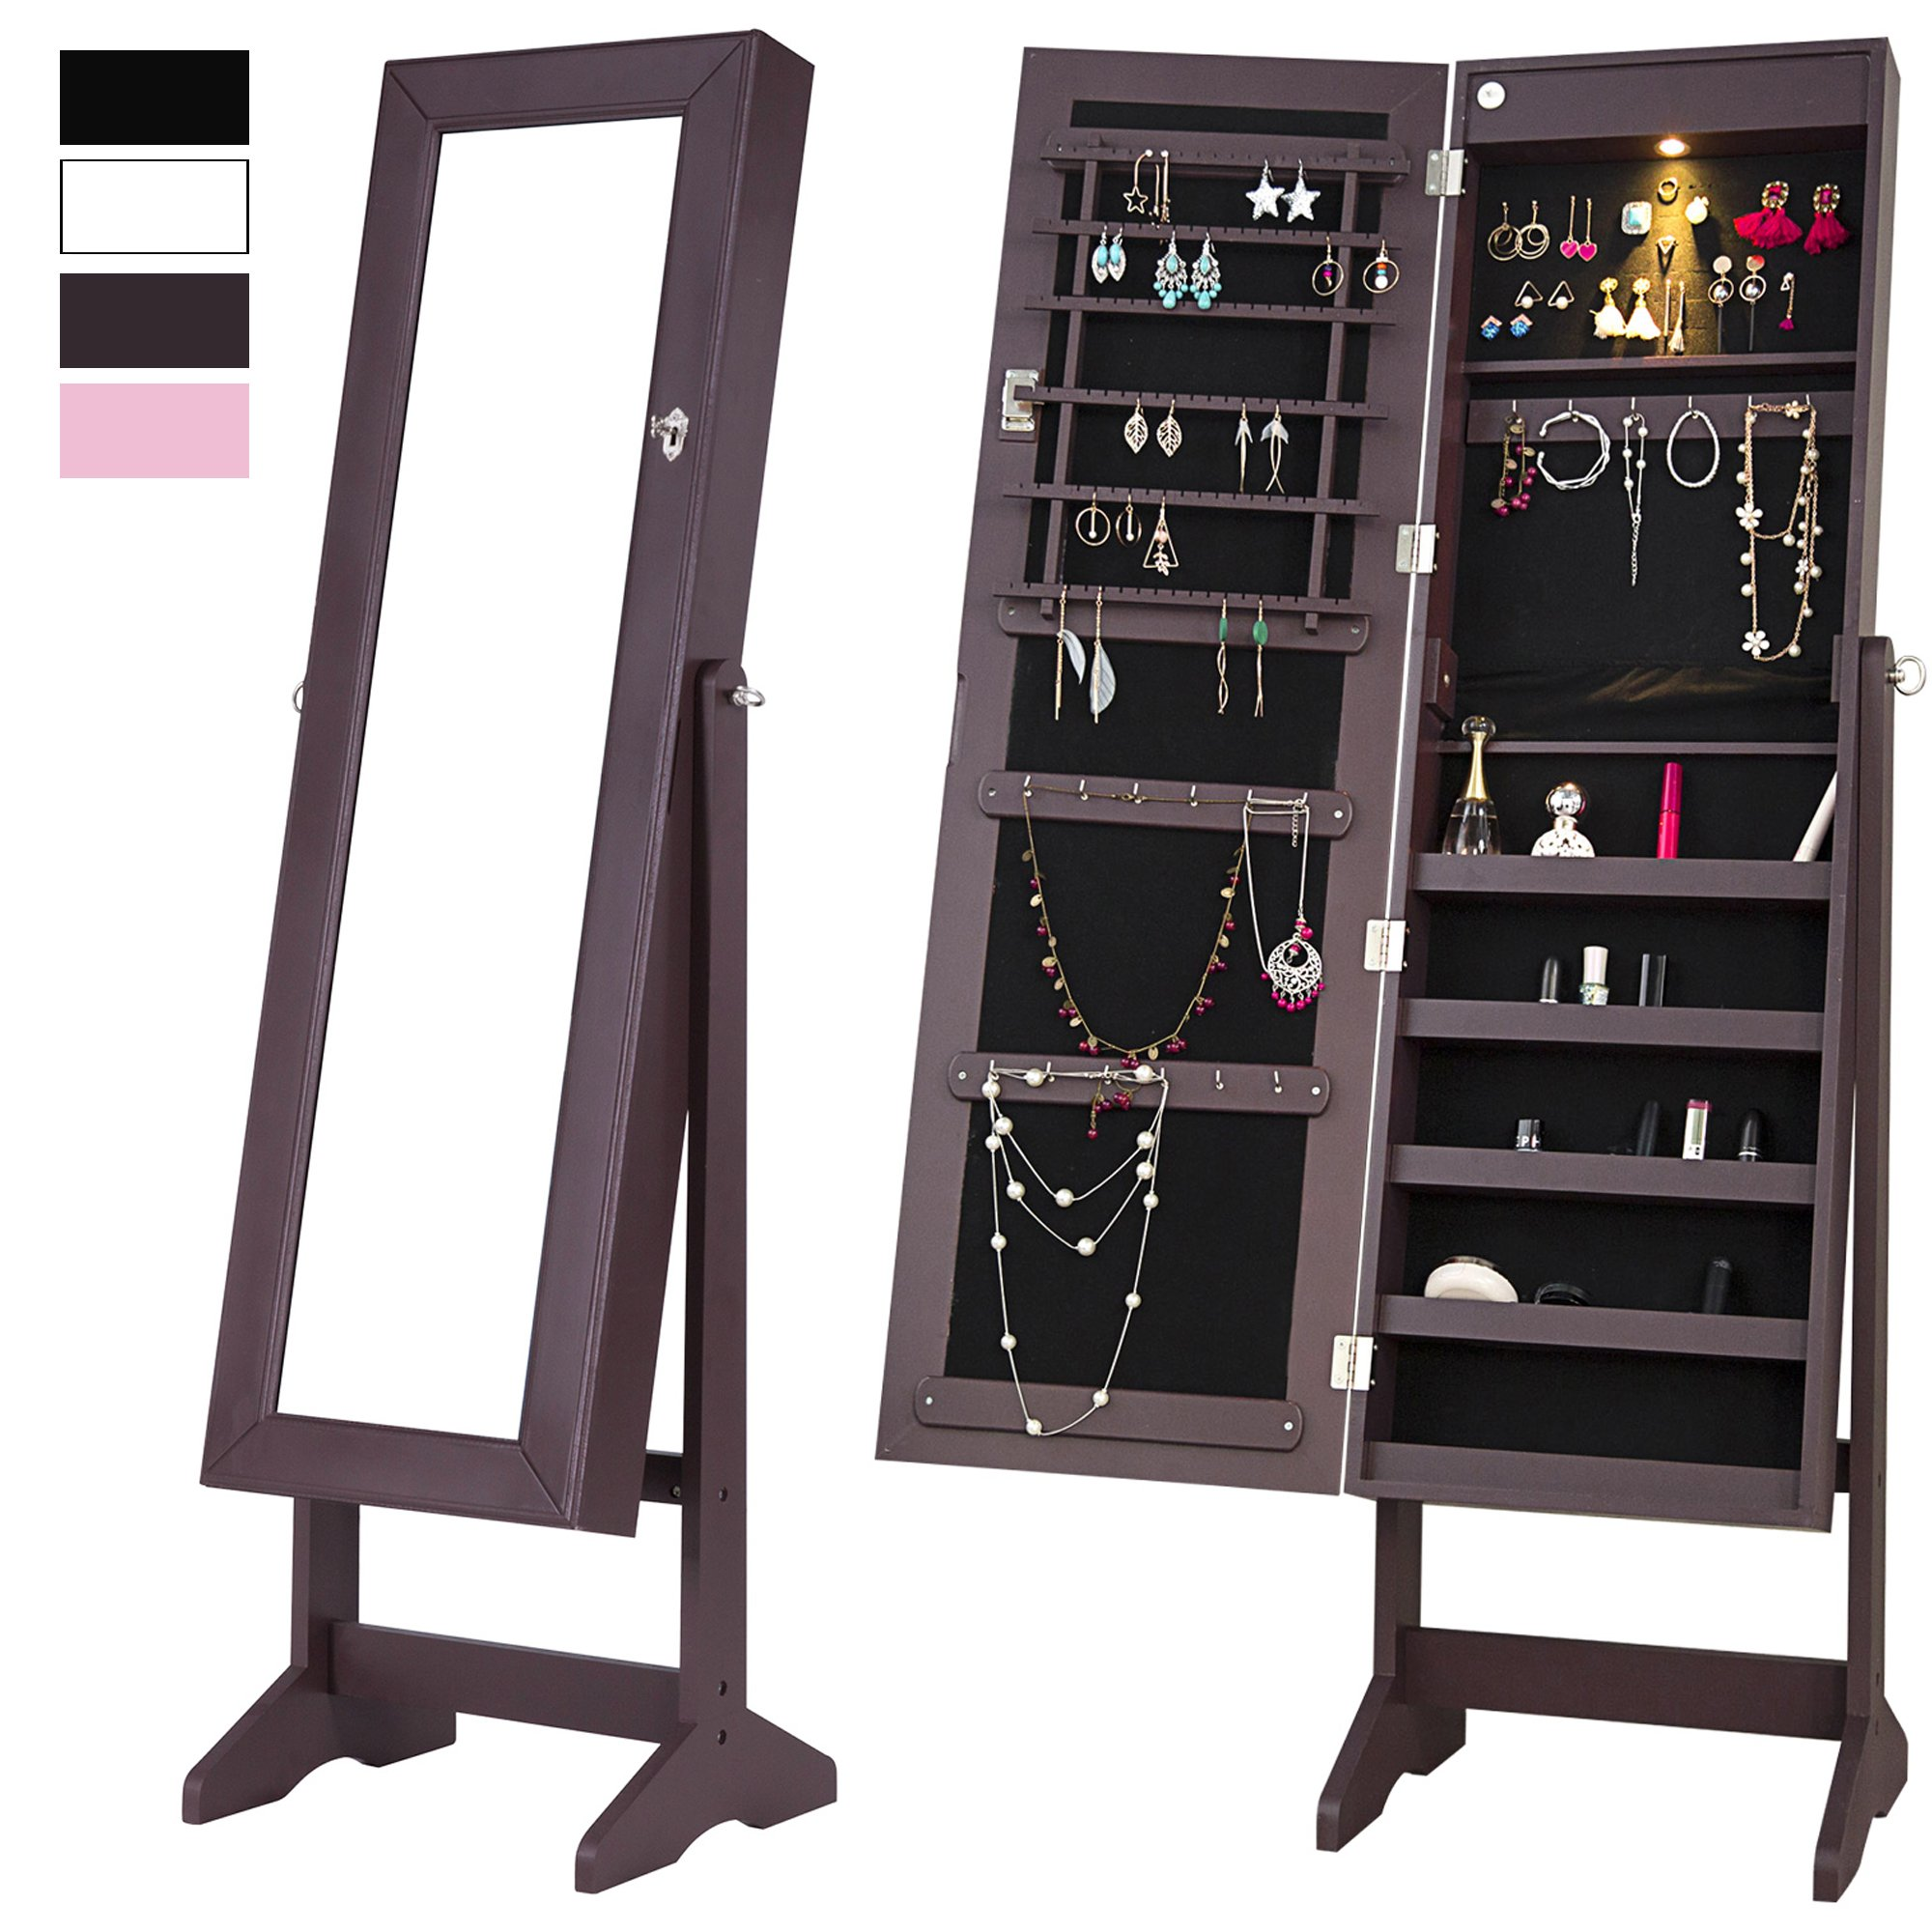 Cloud Mountain Mirrored Jewelry Cabinet Free-Standing Lockable Jewelry Armoire Full Length Floor Tilting Jewelry Organizer with LED Light, Espresso